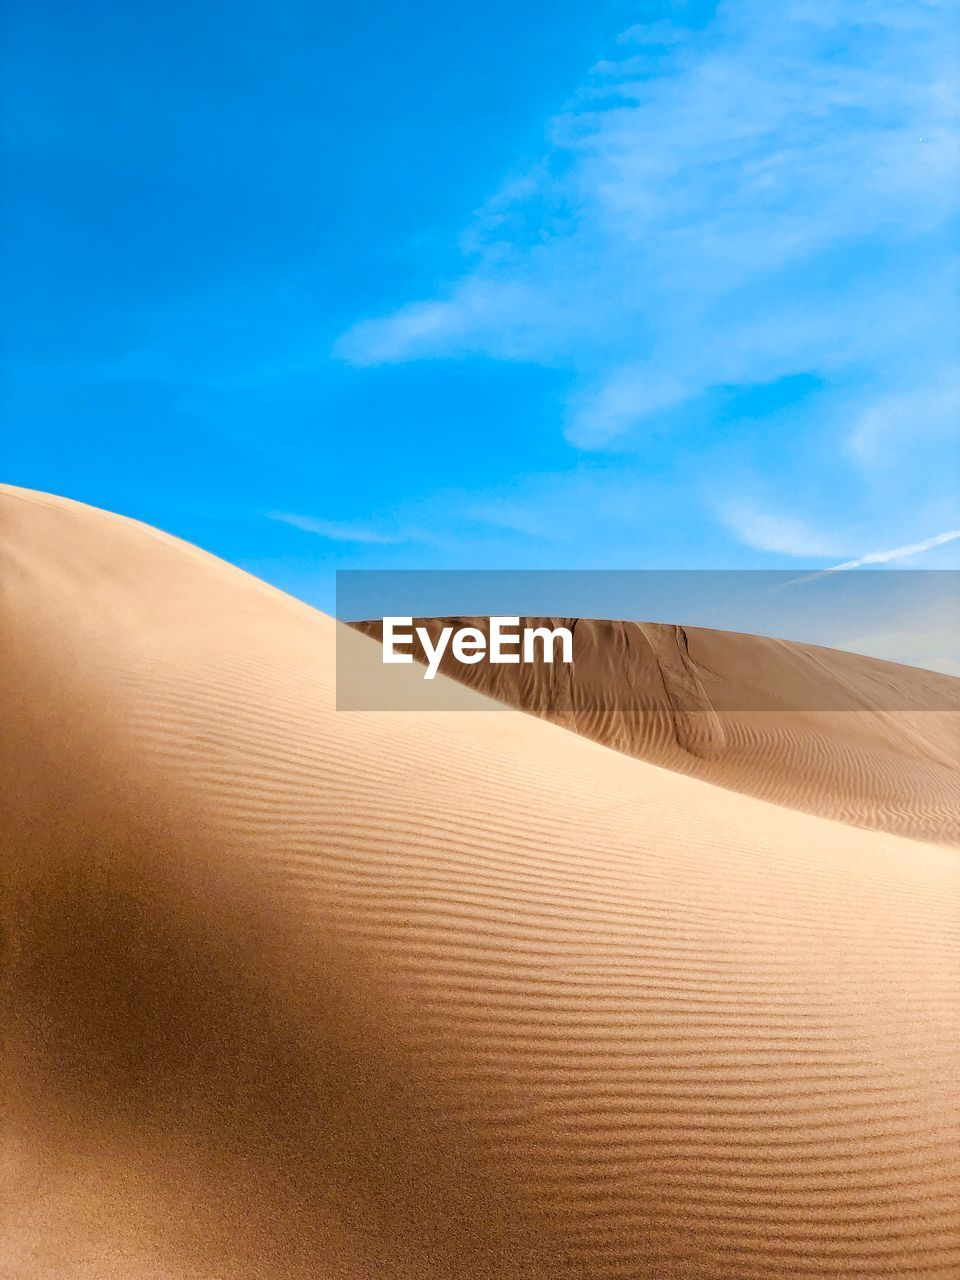 scenics - nature, sand, desert, land, sand dune, arid climate, climate, beauty in nature, landscape, tranquil scene, sky, tranquility, blue, nature, non-urban scene, environment, sunlight, day, remote, cloud - sky, no people, outdoors